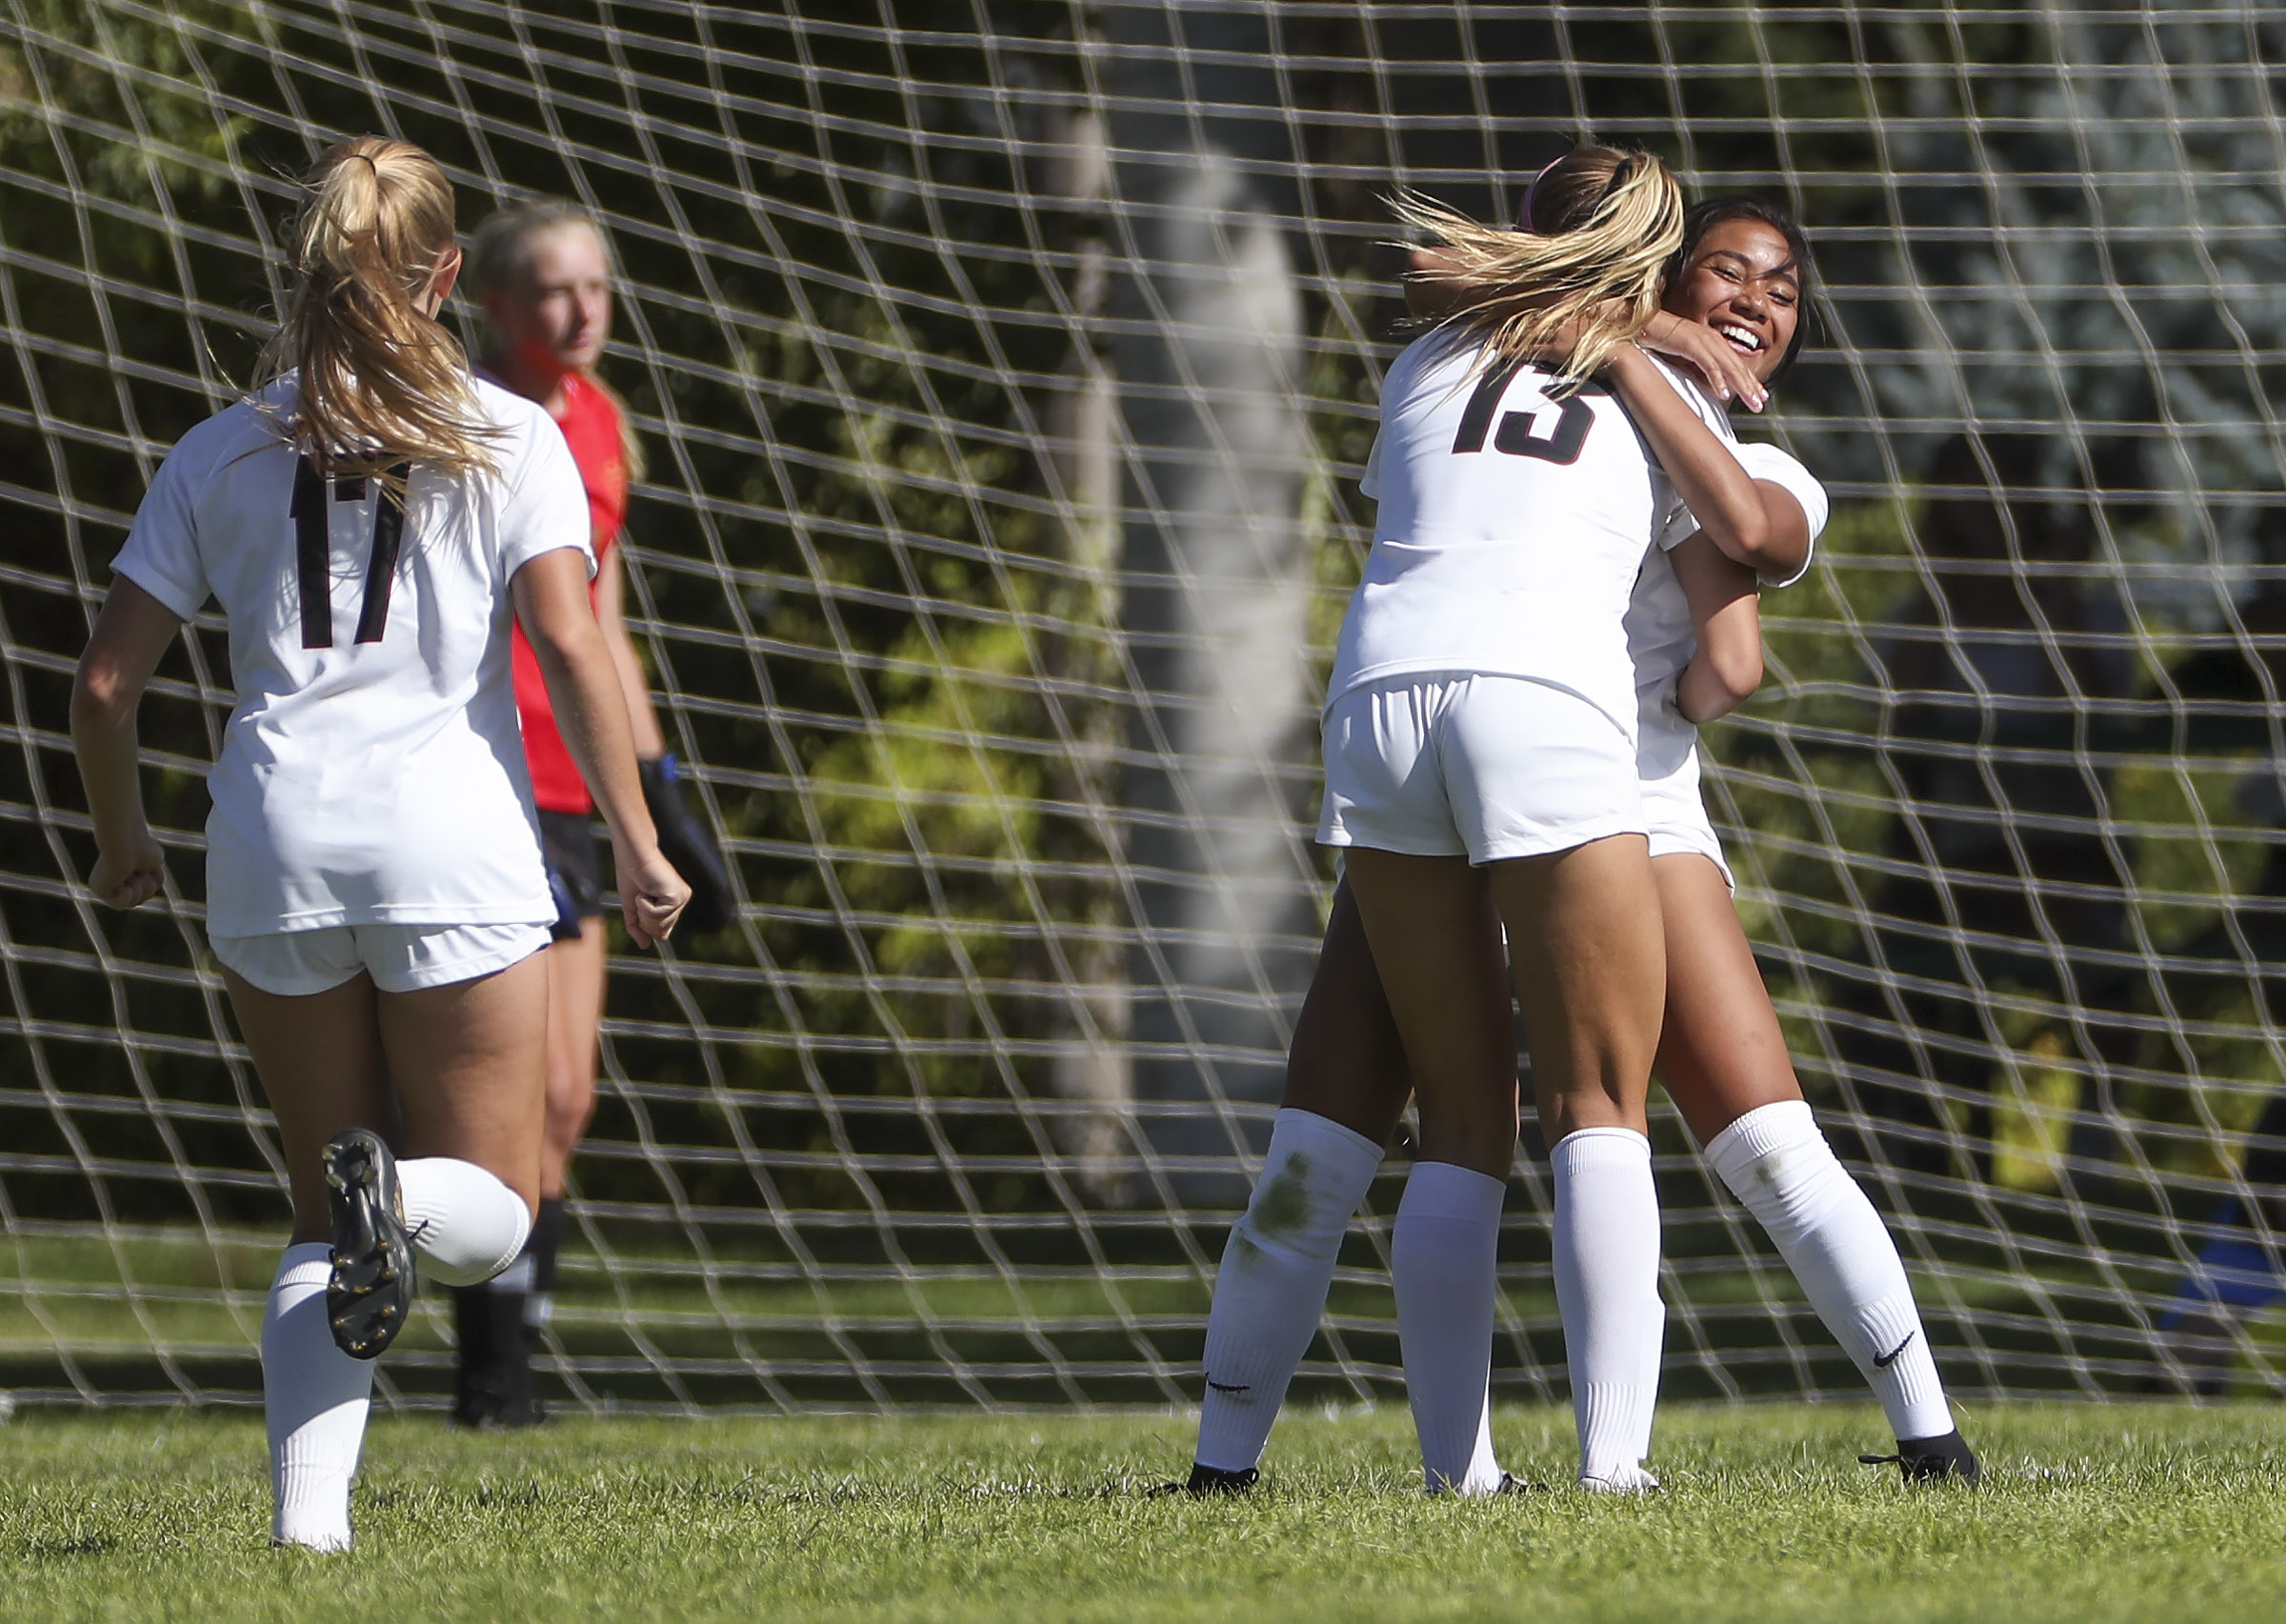 Tiani Fonoti, right gets a hug from Northridge teammate Lauren Call after scoring the only goal of the game as Northridge defeated Davis 1-0 in Kaysville on Tuesday, Aug. 20, 2019.